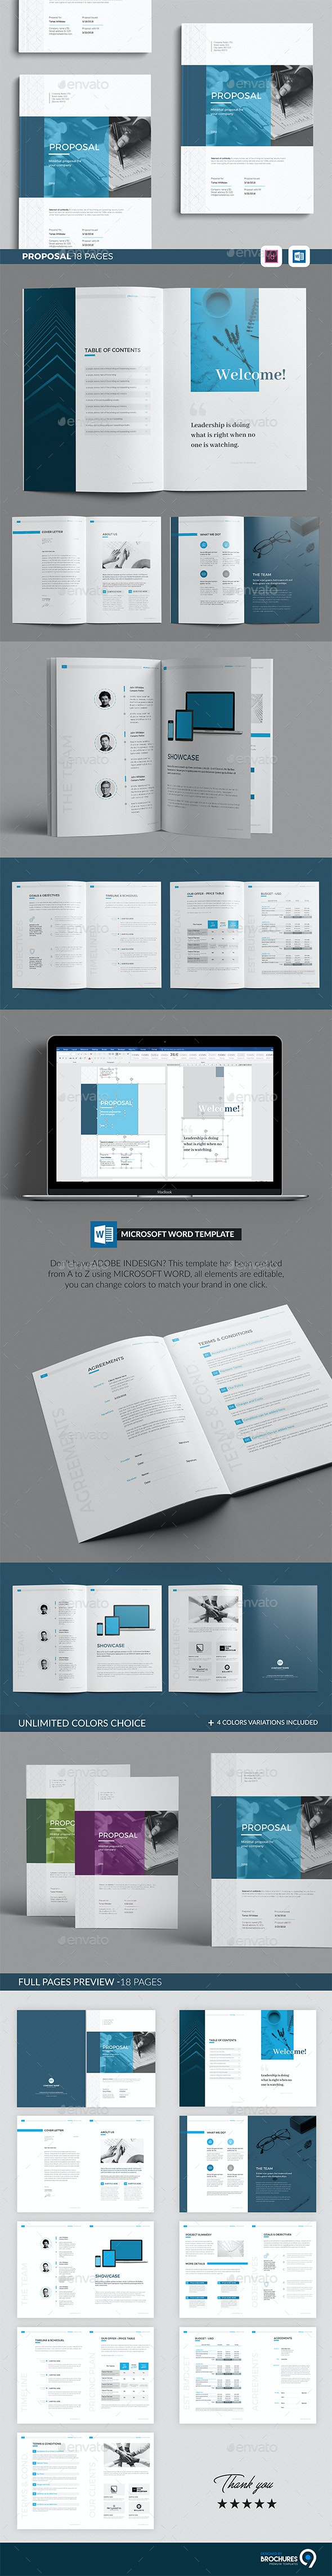 Word Proposal 18 Pages - Corporate Brochures